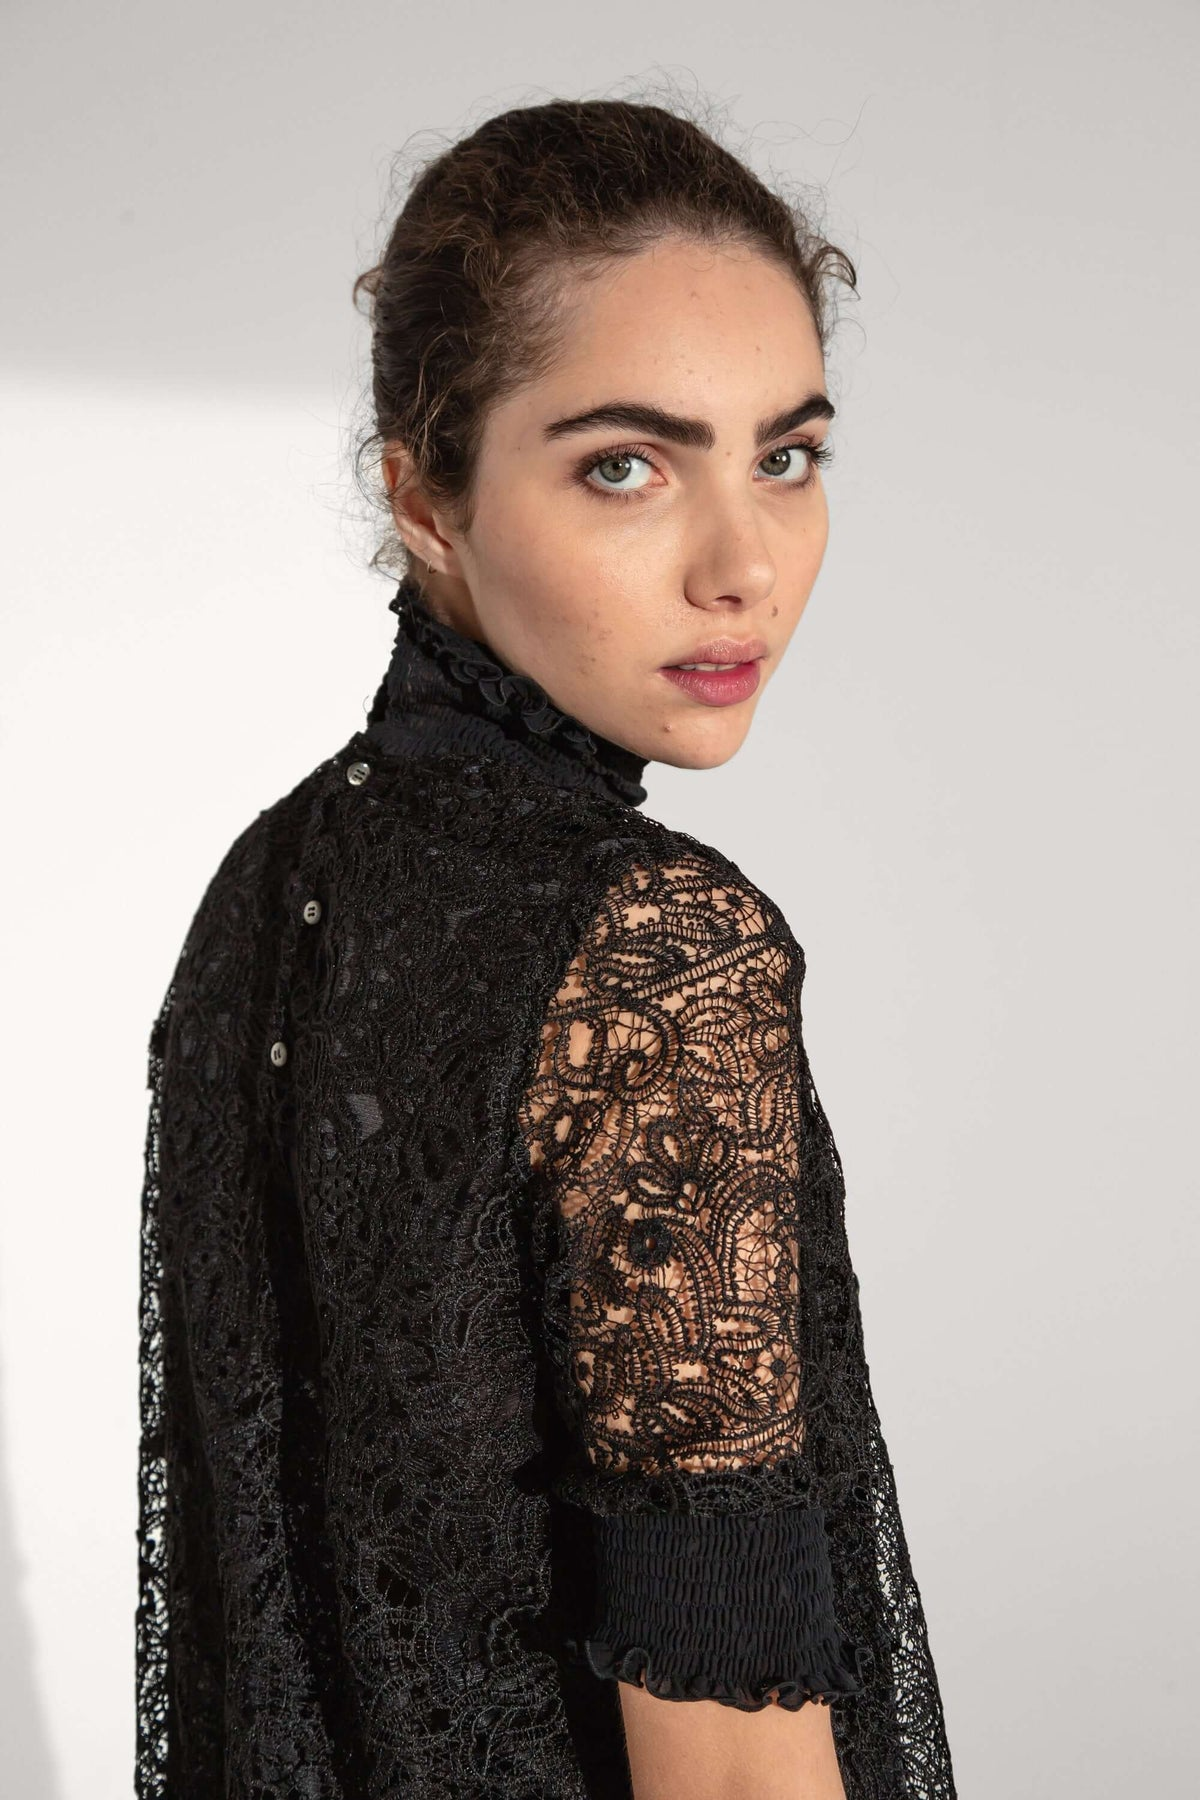 Dries dress in hibiscus lace